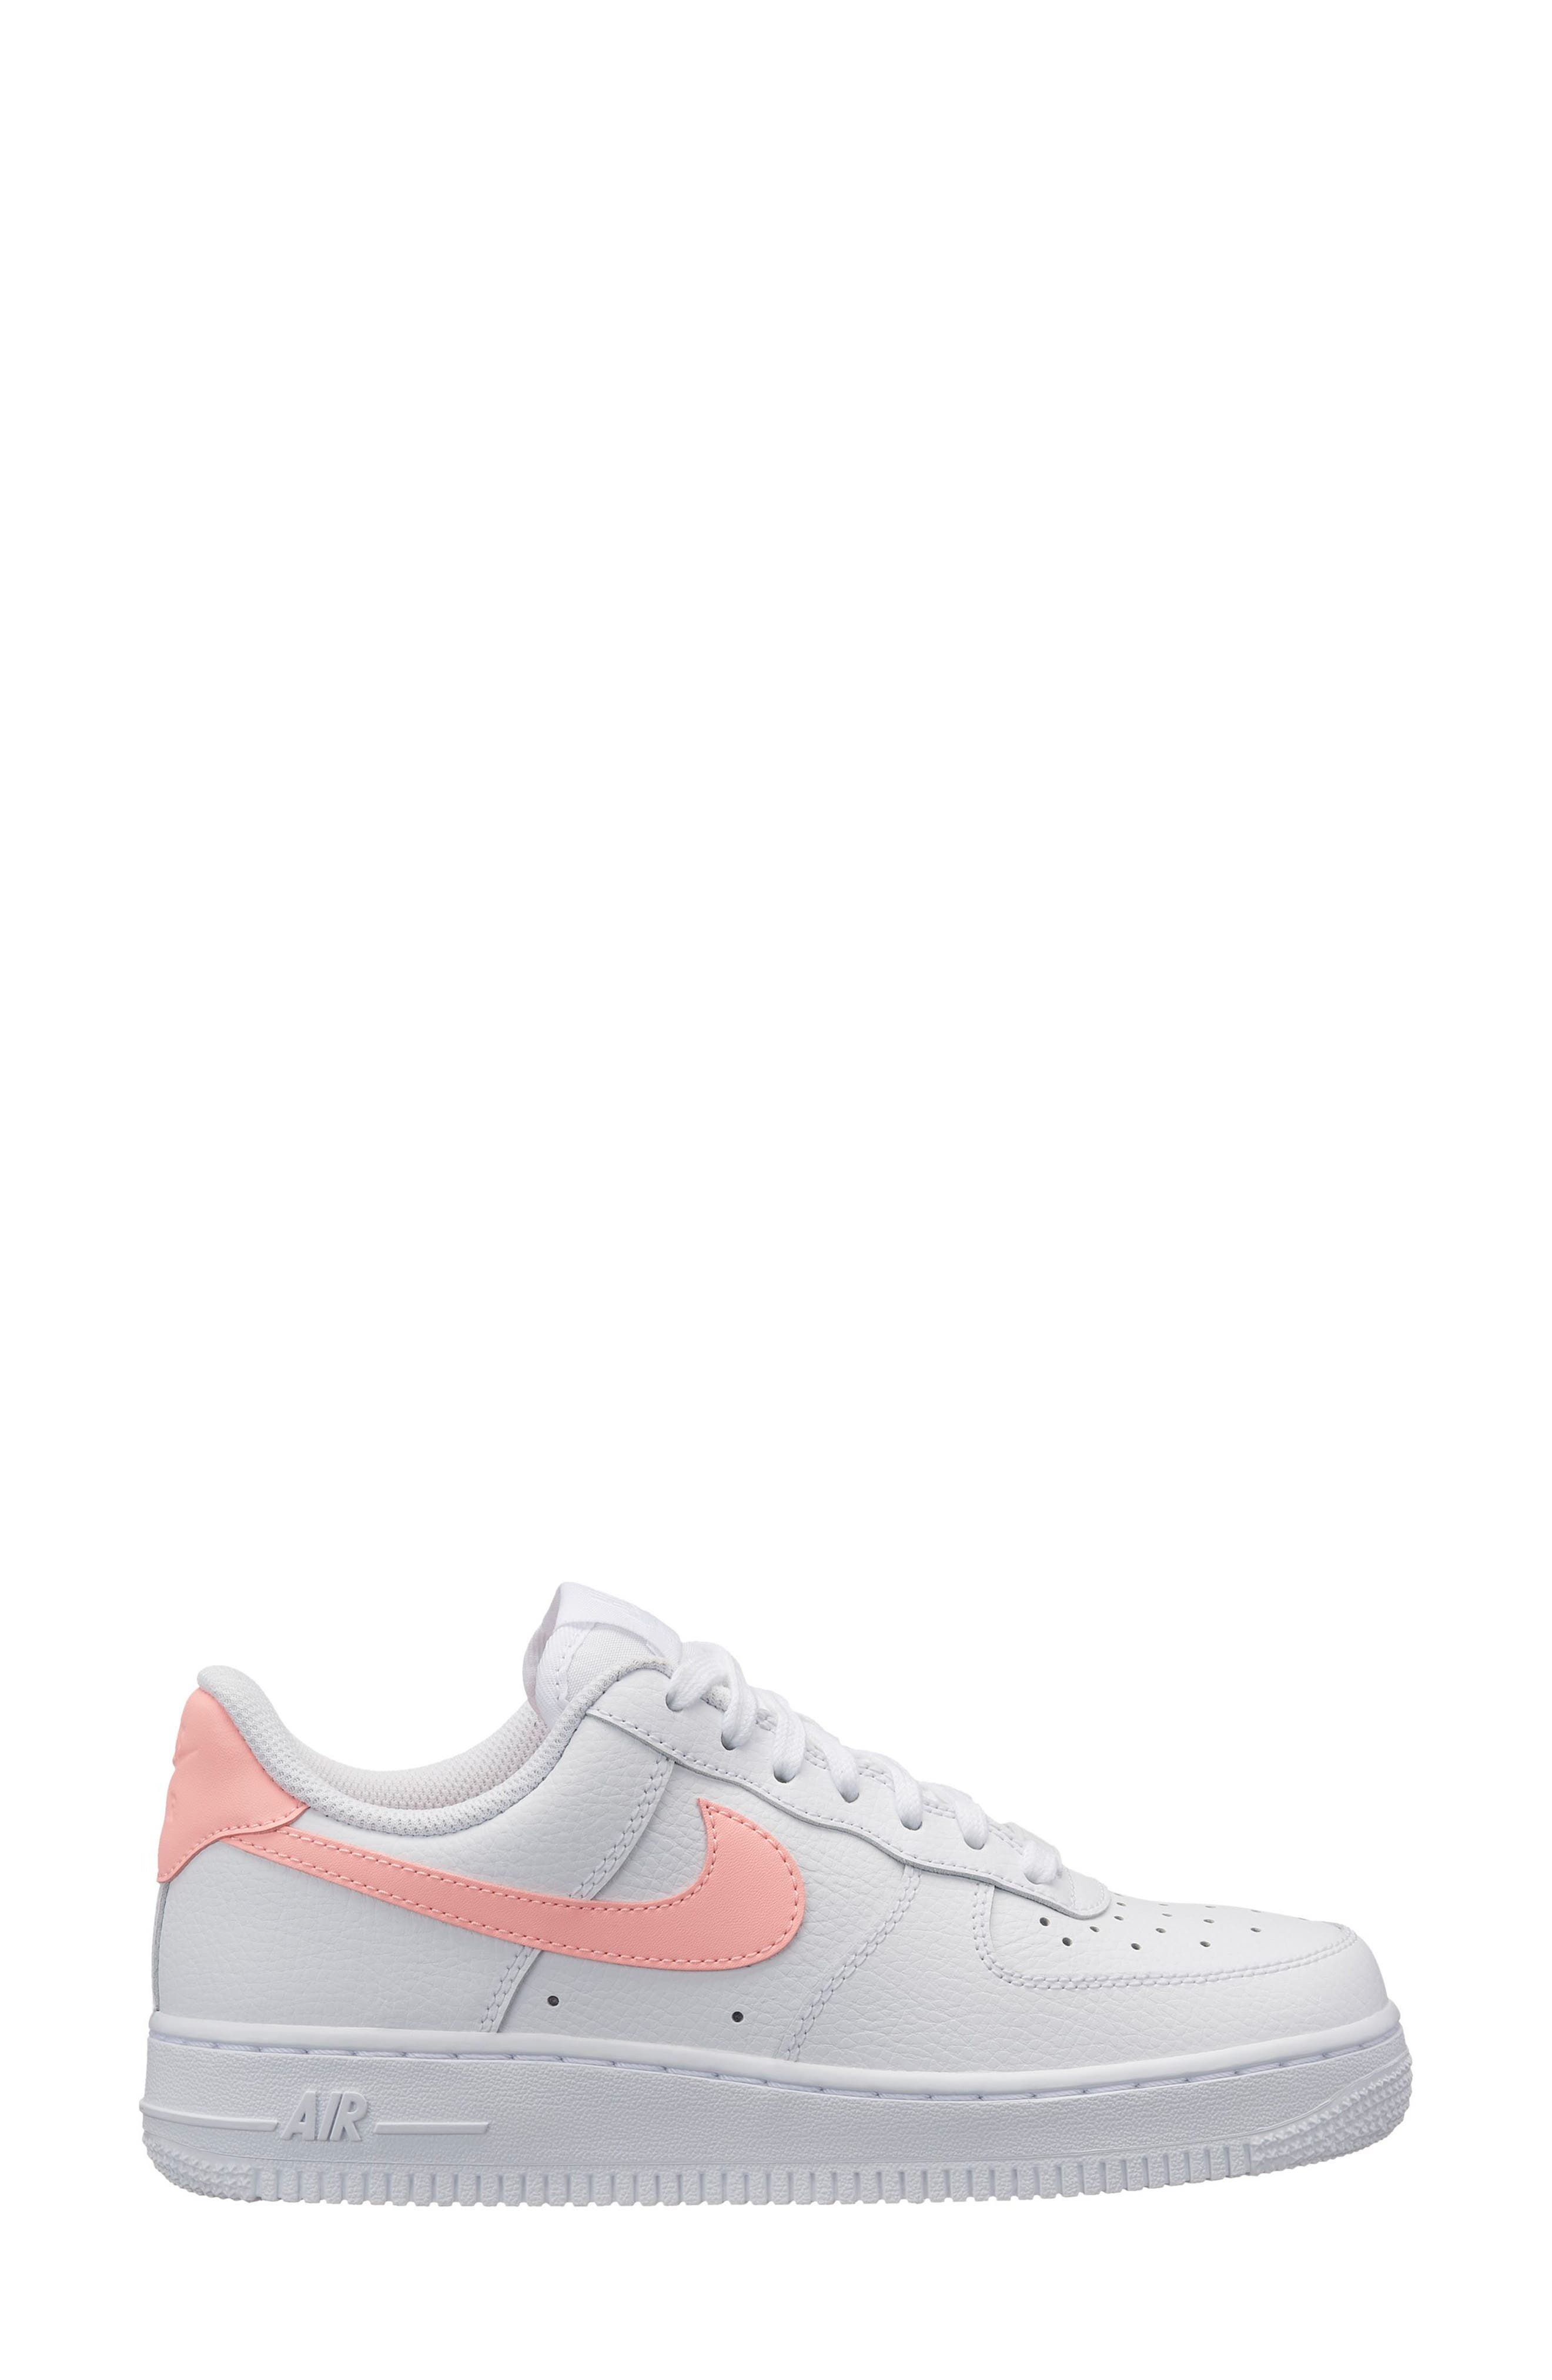 Air Force 1 '07 Patent Sneaker,                         Main,                         color, WHITE/ ORACLE PINK-WHITE